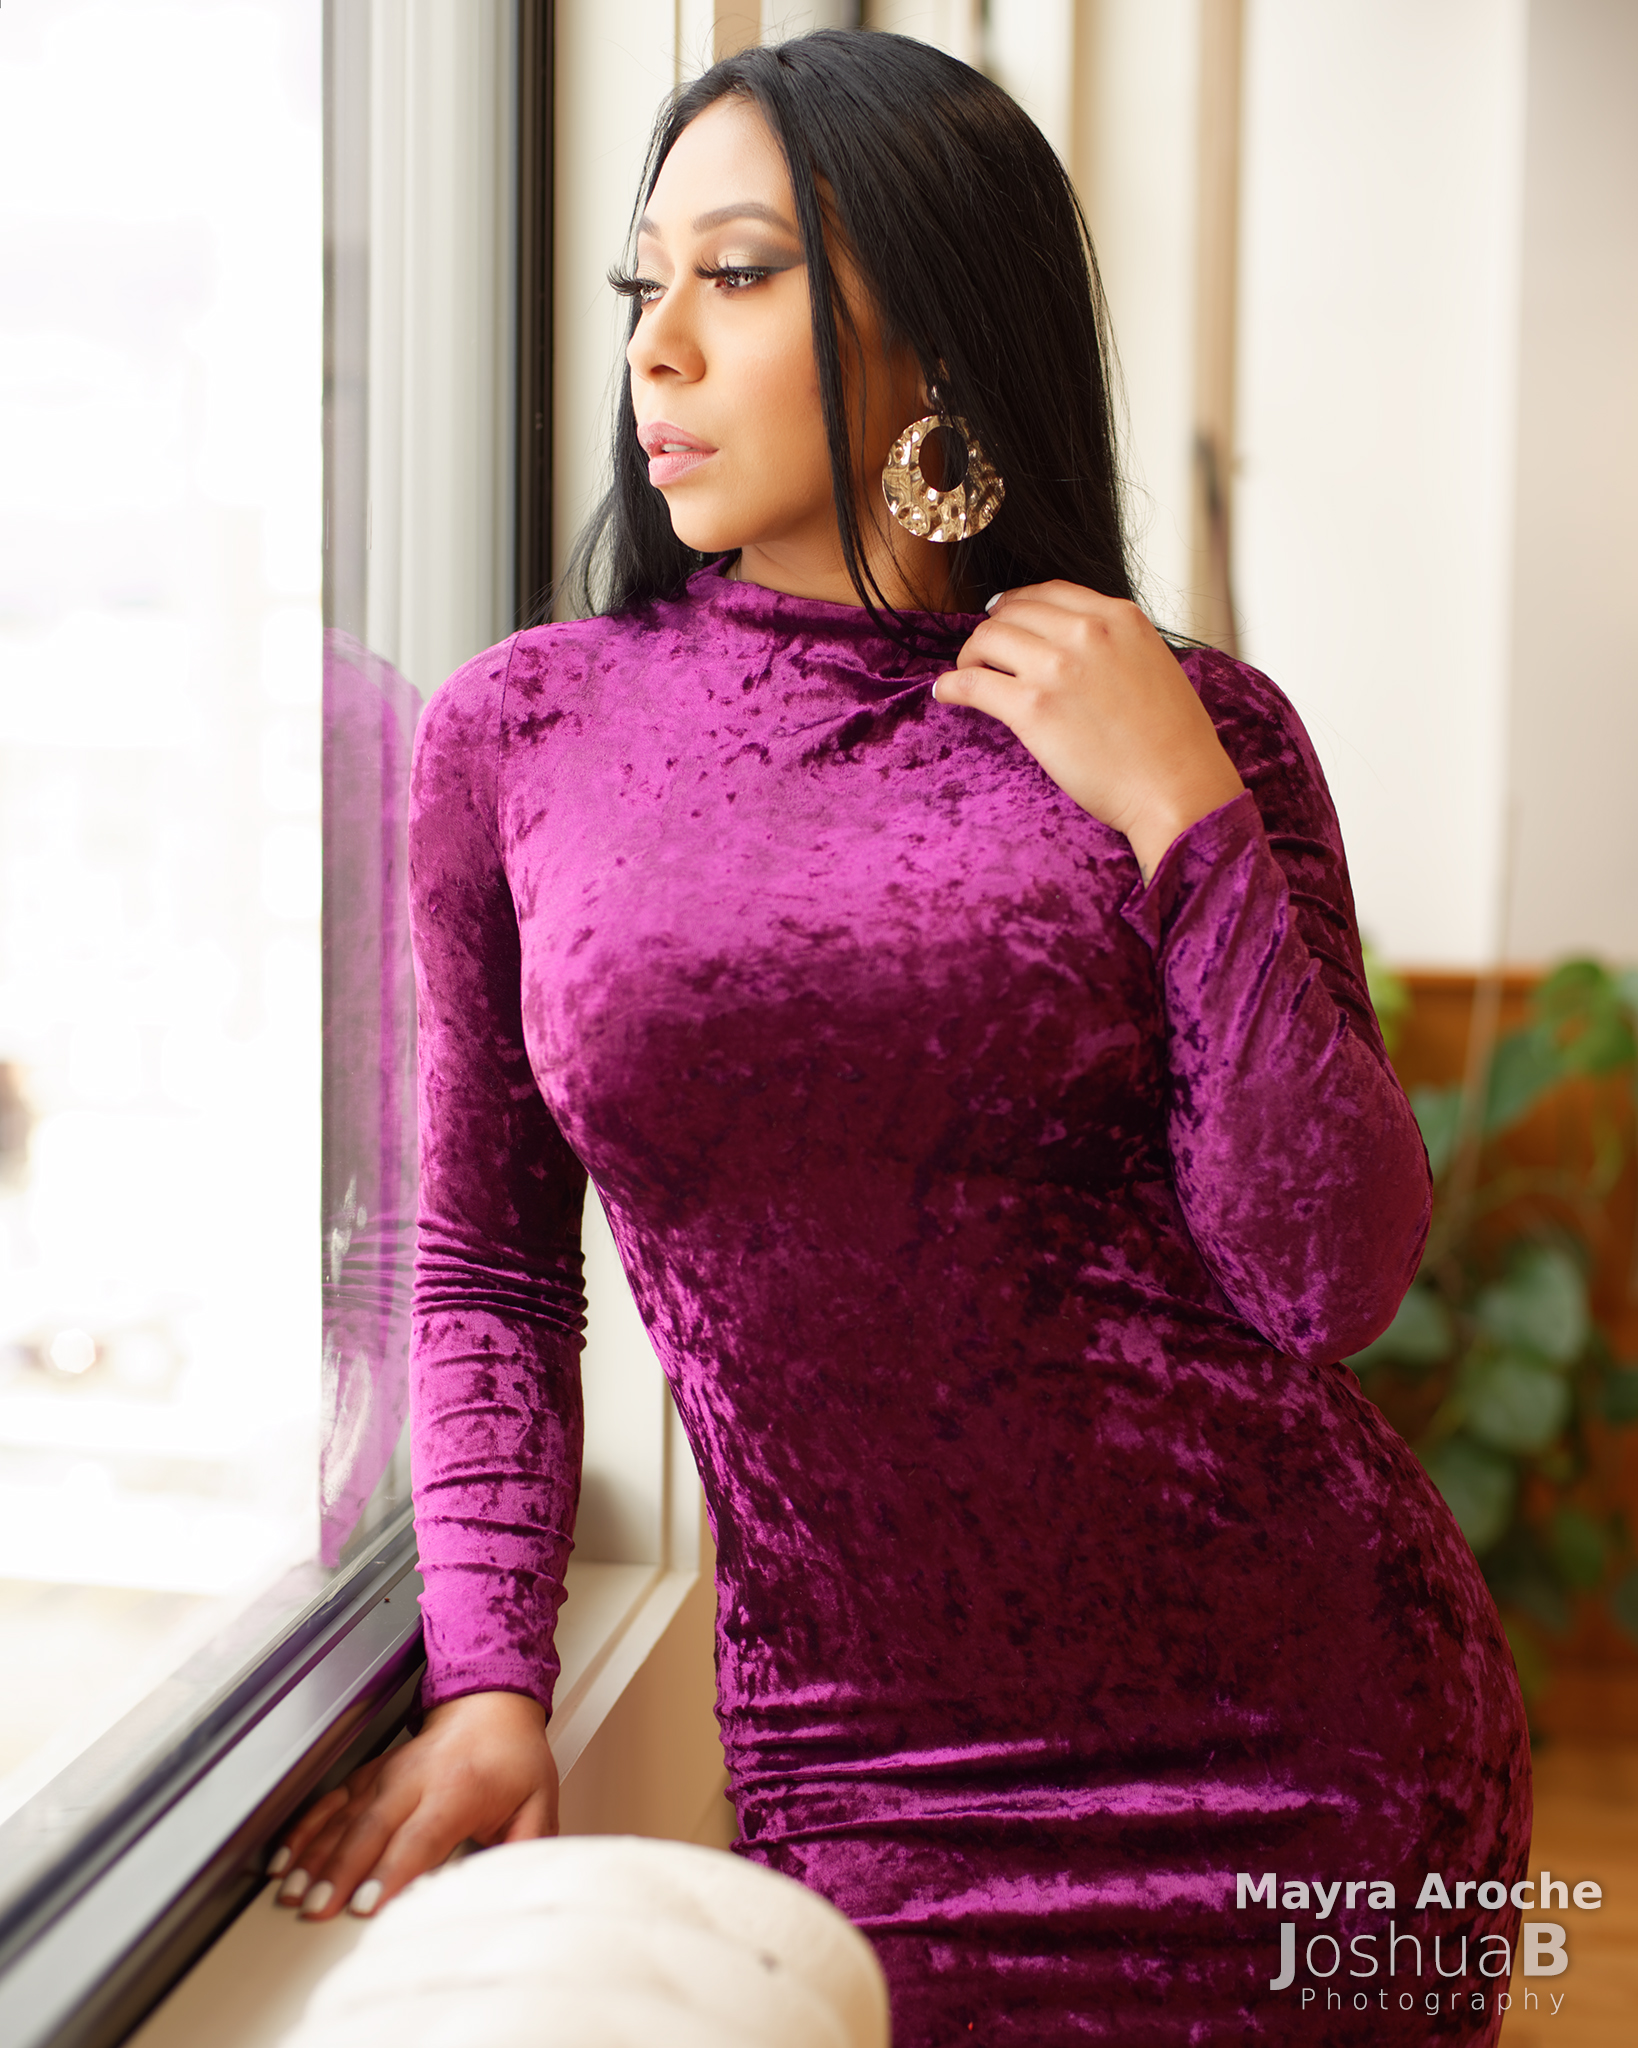 Mayra Aroche modeling at window in purple dress